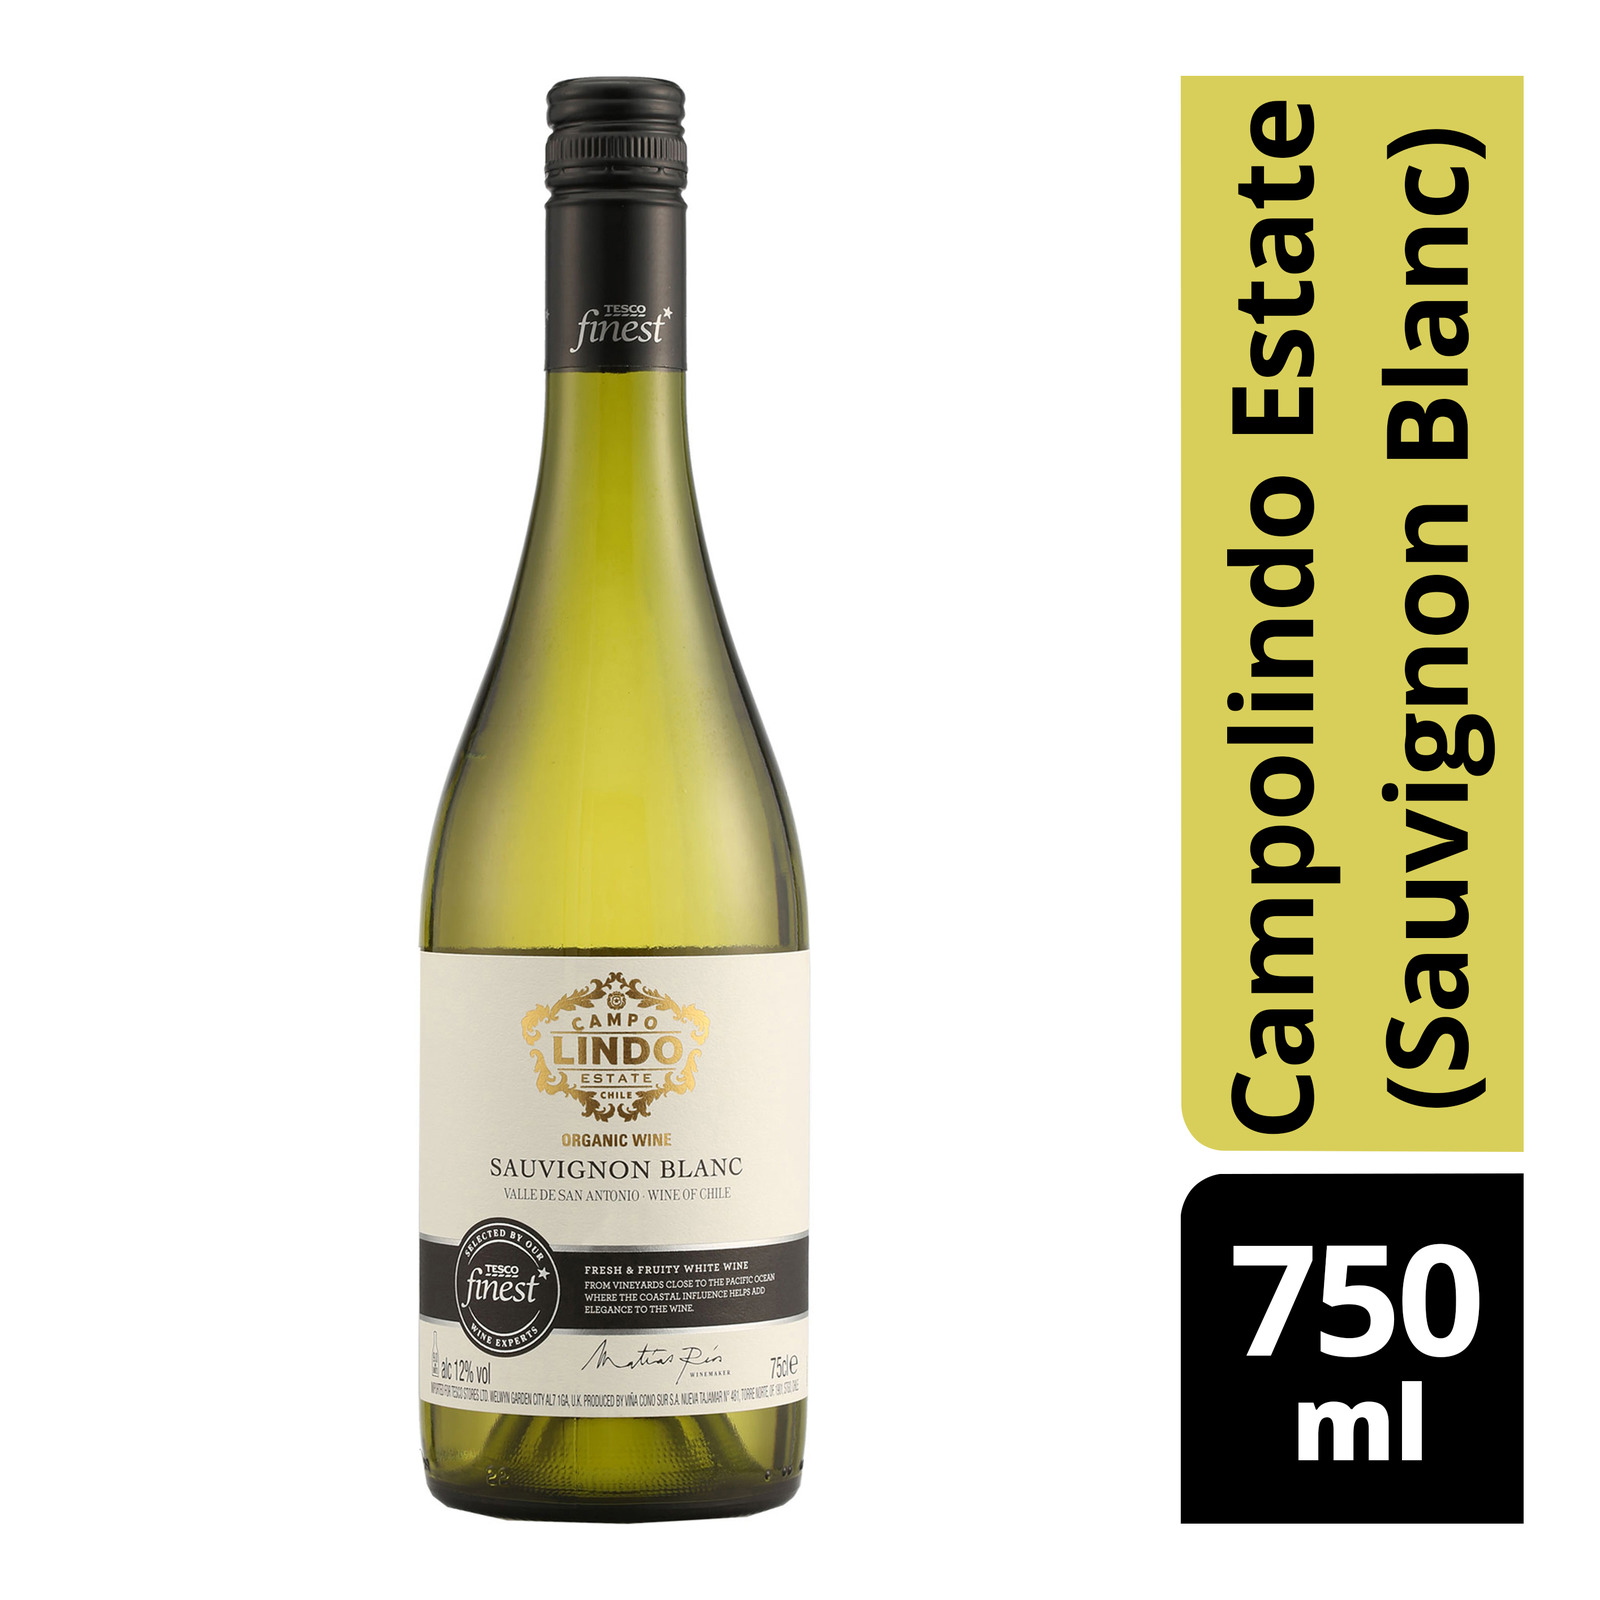 Tesco Finest White Wine - Campolindo Estate(Sauvignon Blanc)